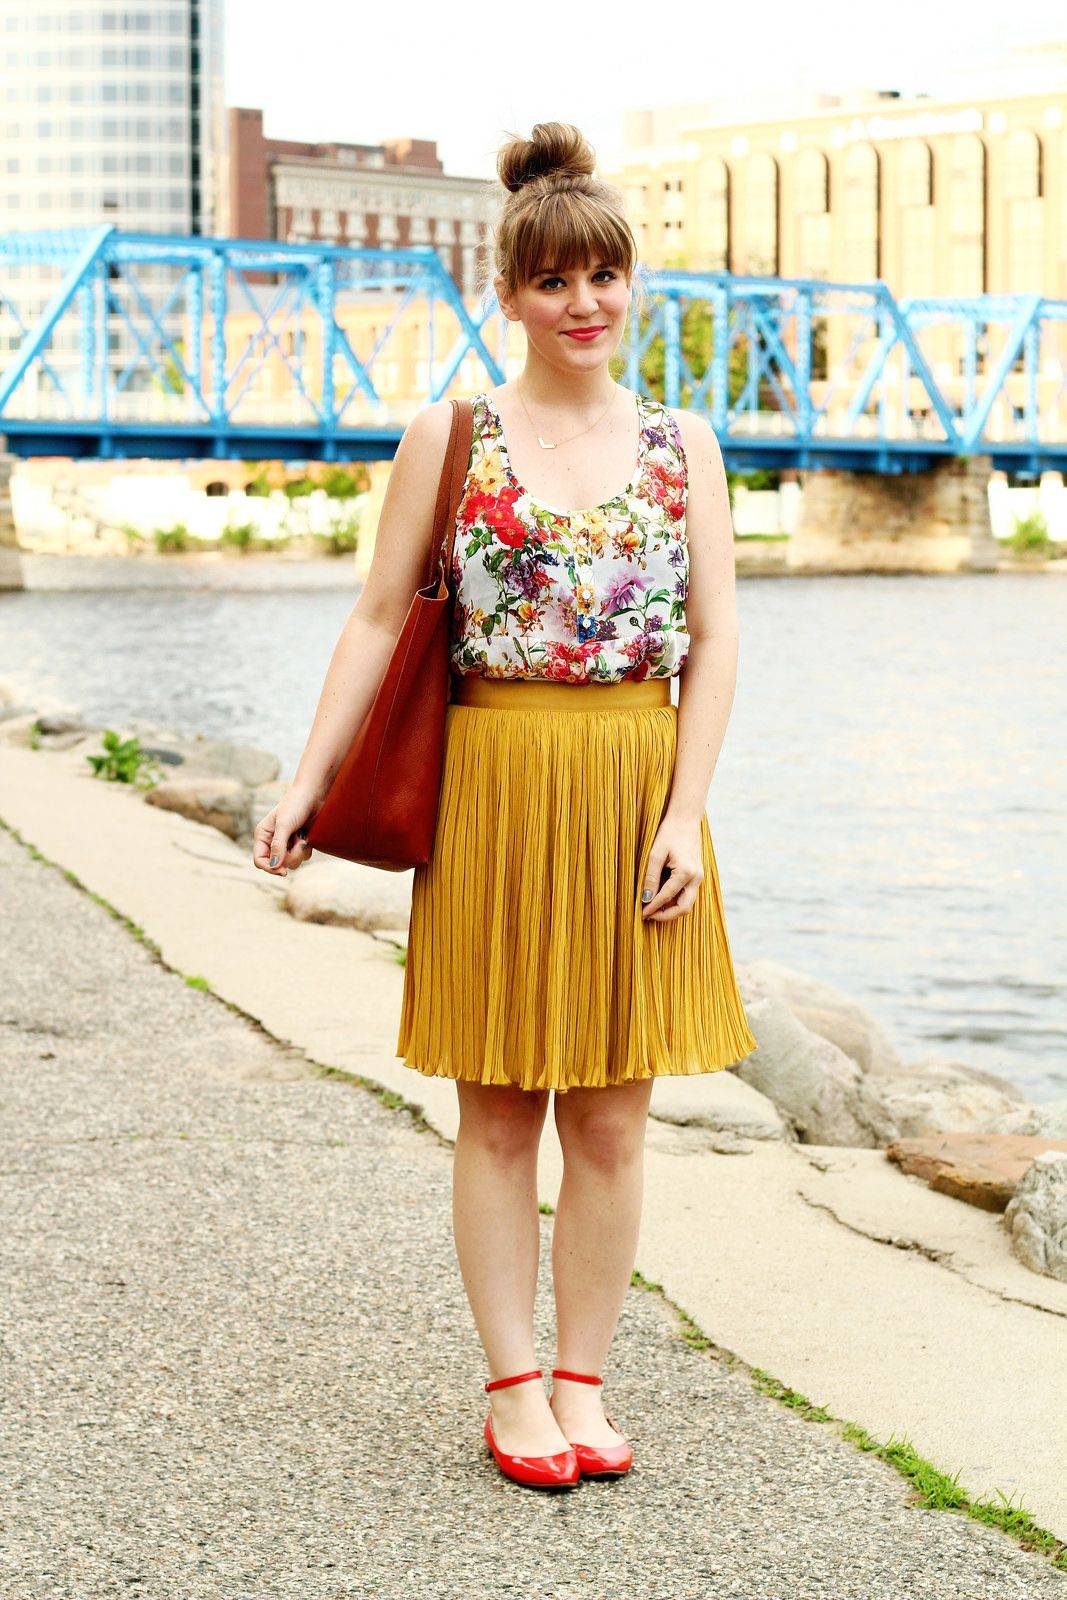 Does a yellow dress go with red shoes